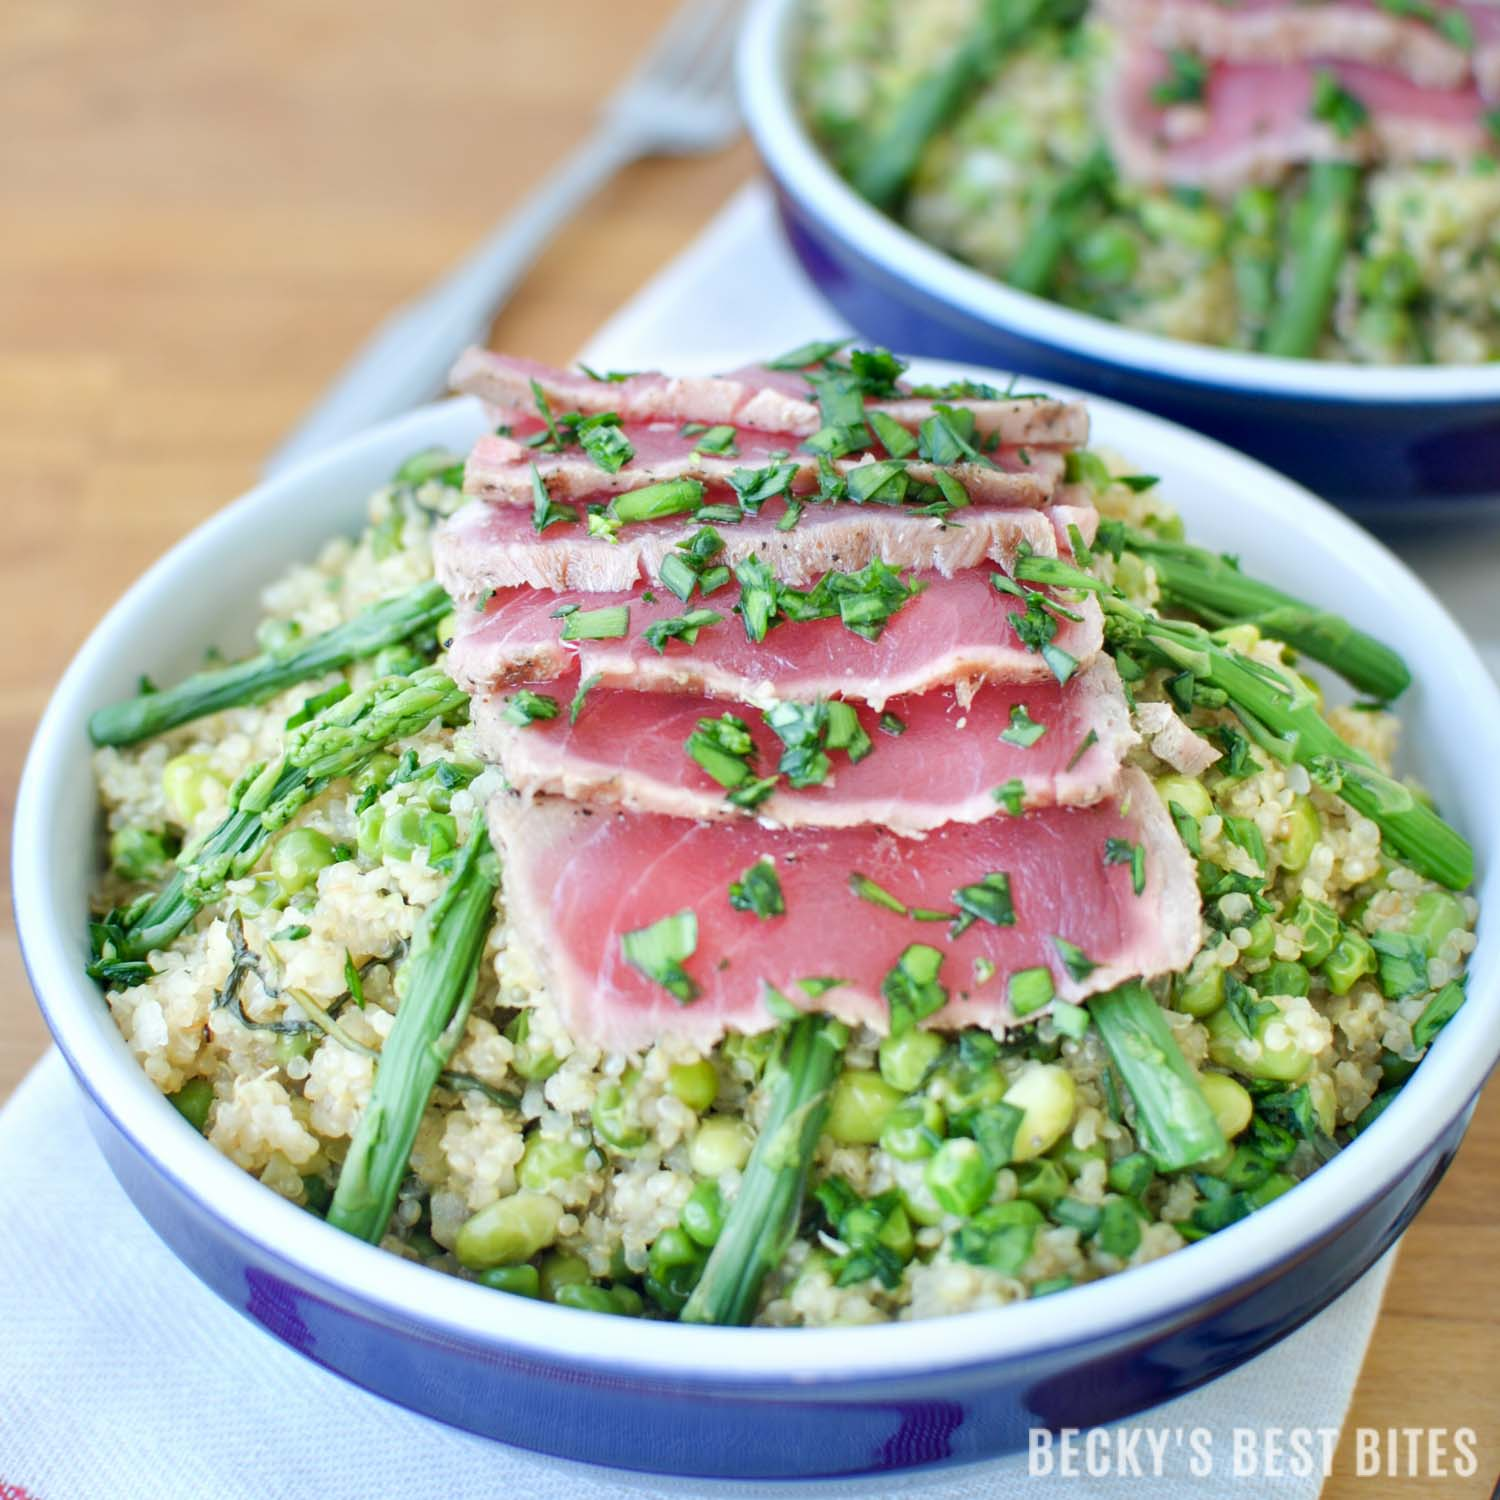 """Spring Quinoa Risotto and Seared Ahi Tuna Bowls combine edamame, asparagus, sweet peas and arugula in a creamy rice dish topped with sushi quality, """"thaw and serve"""" ahi tuna with a Garlic-Peppercorn Rub. #BBSuperFresh #Seafoodies #ad"""